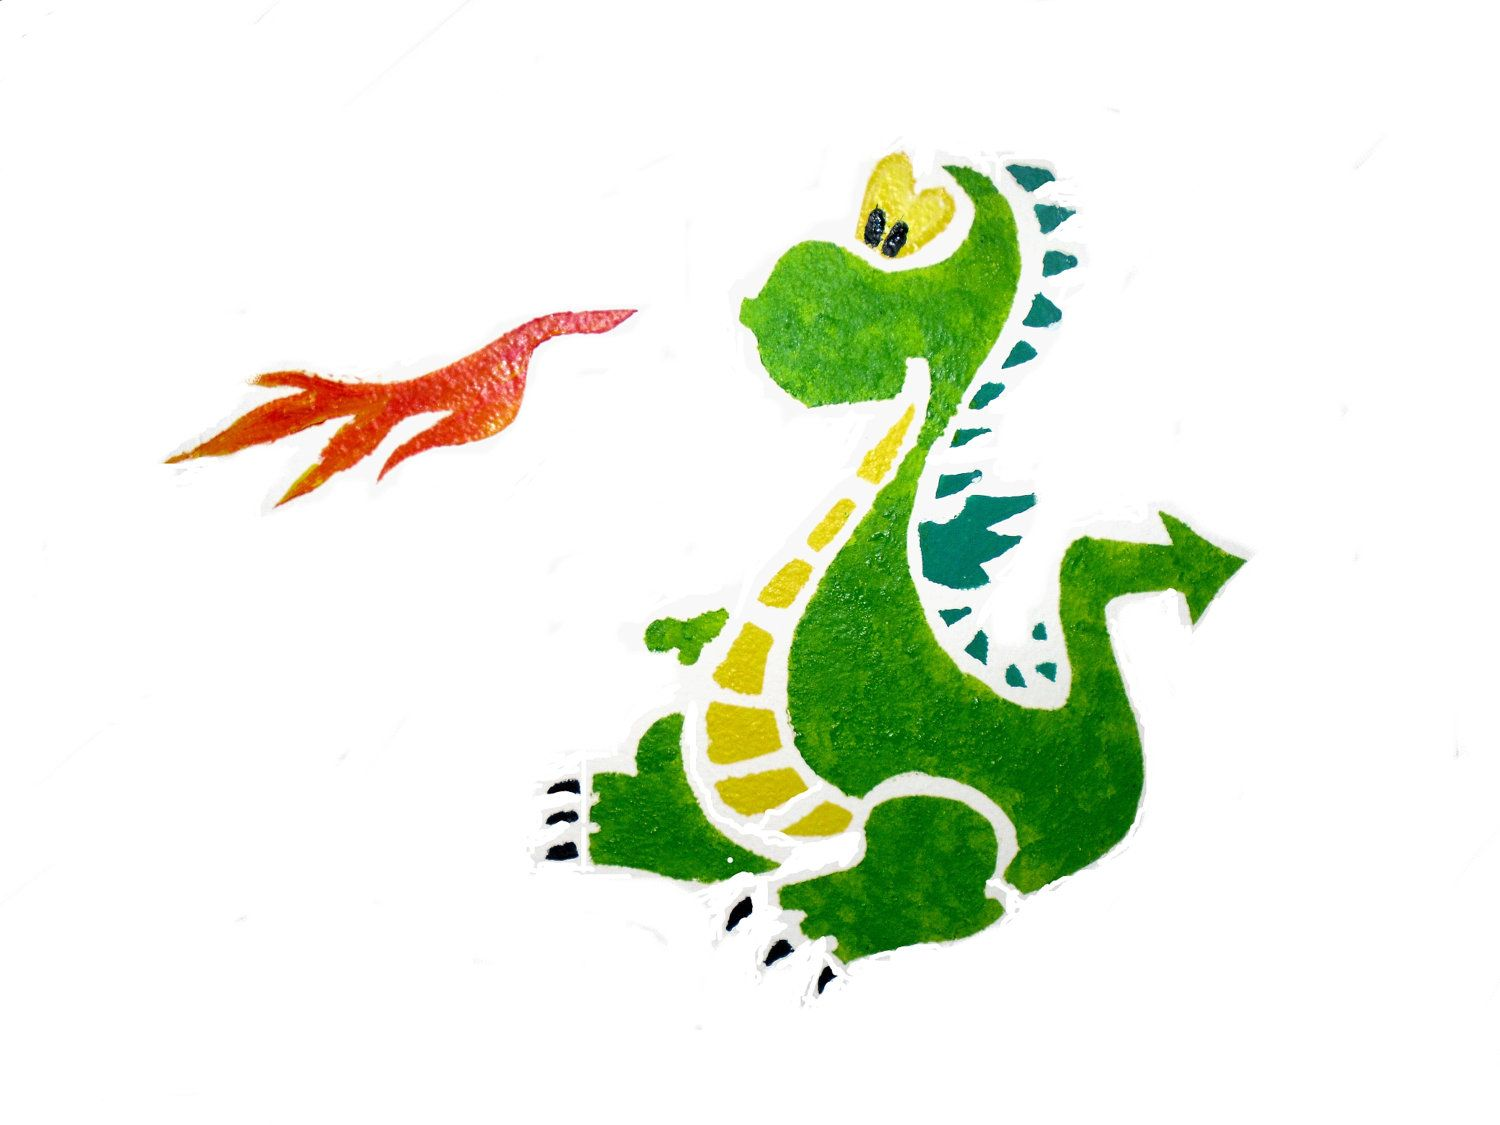 Dragon wall stencil paint and decorate your childs bedroom or dragon wall stencil paint and decorate your childs bedroom or babys nursery different sizes amipublicfo Choice Image